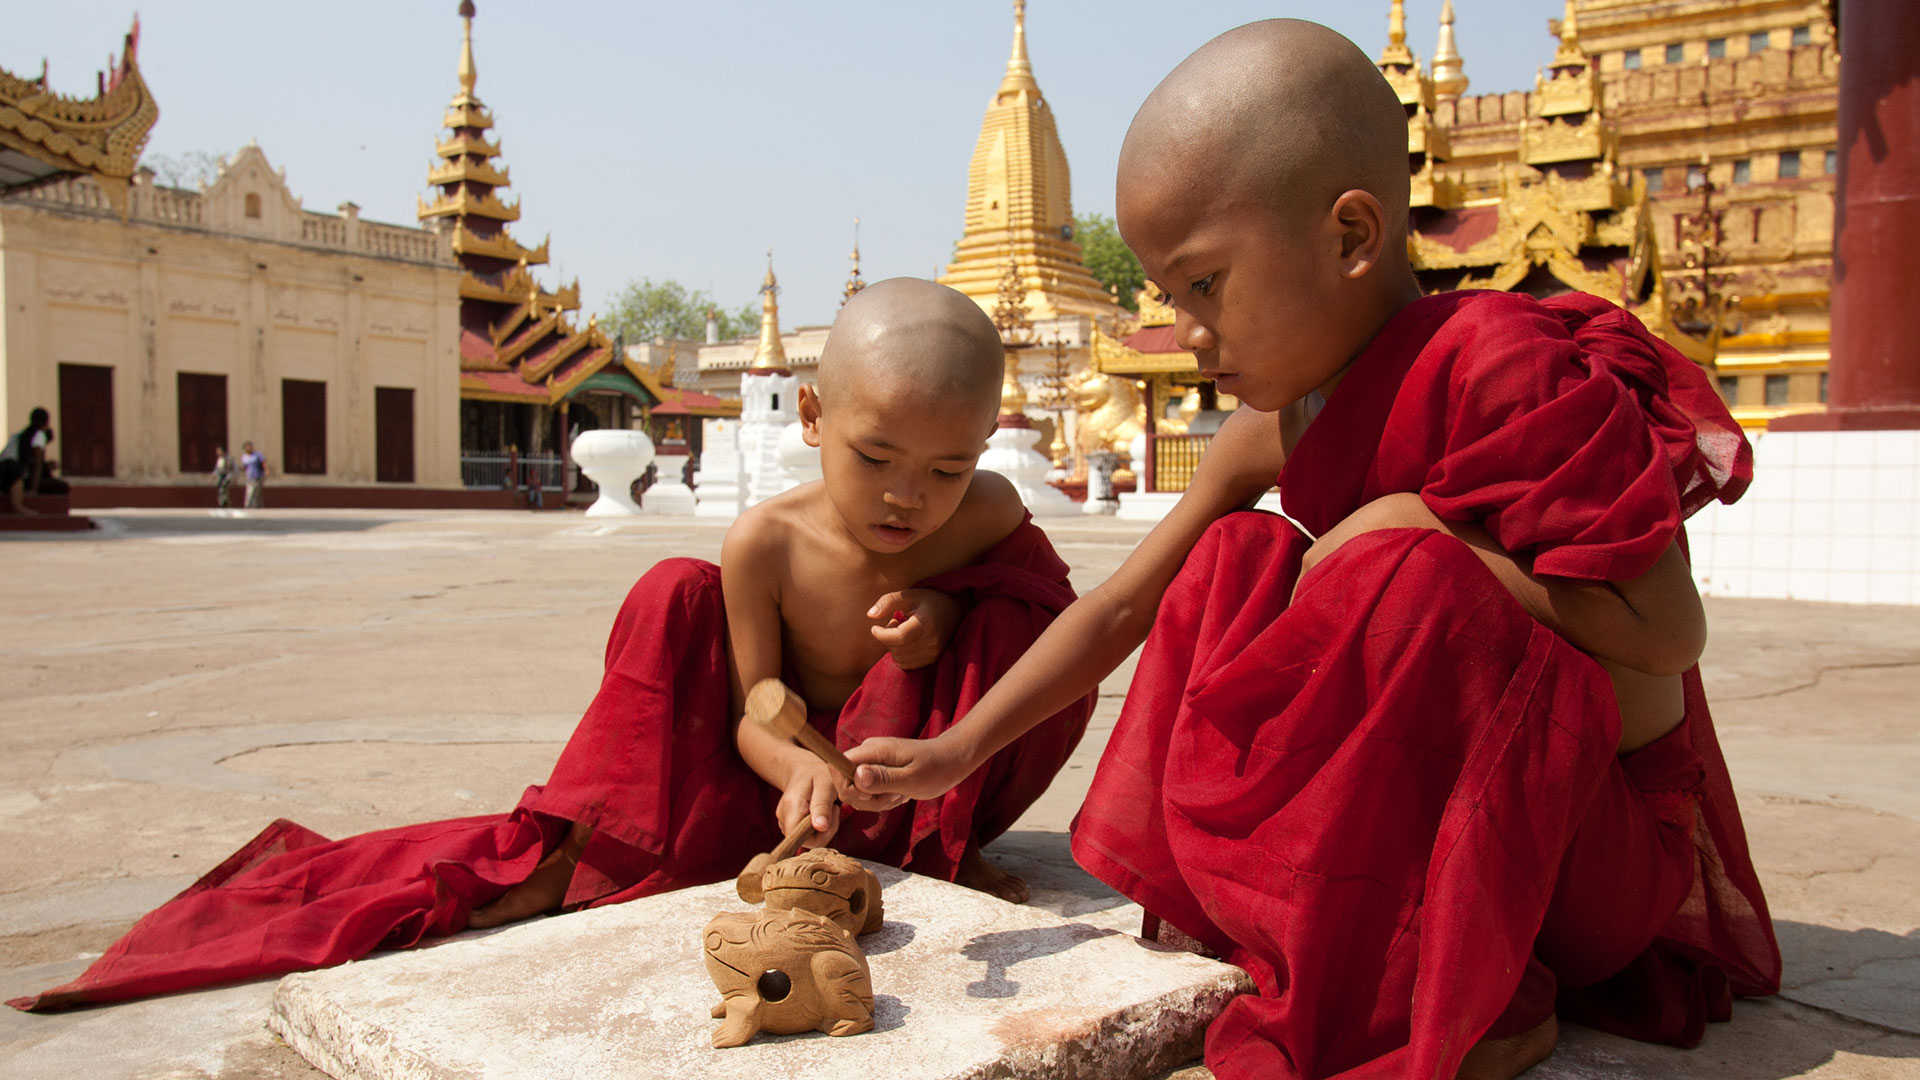 Young monks playing in temple complex, Myanmar